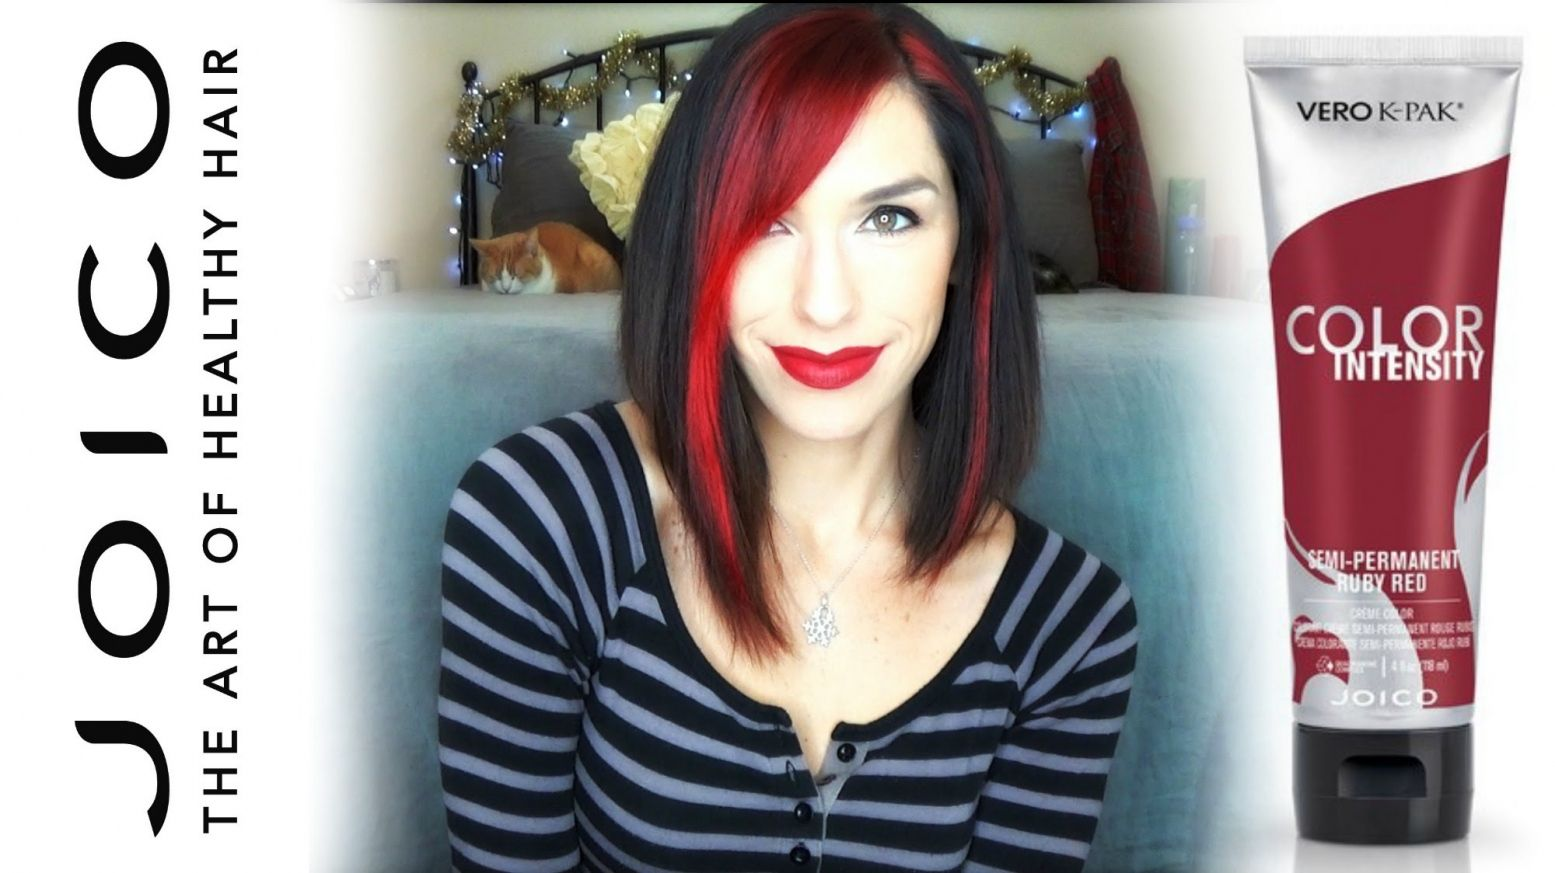 Joico Hair Color Reviews Best Way To Color Your Hair At Home Check